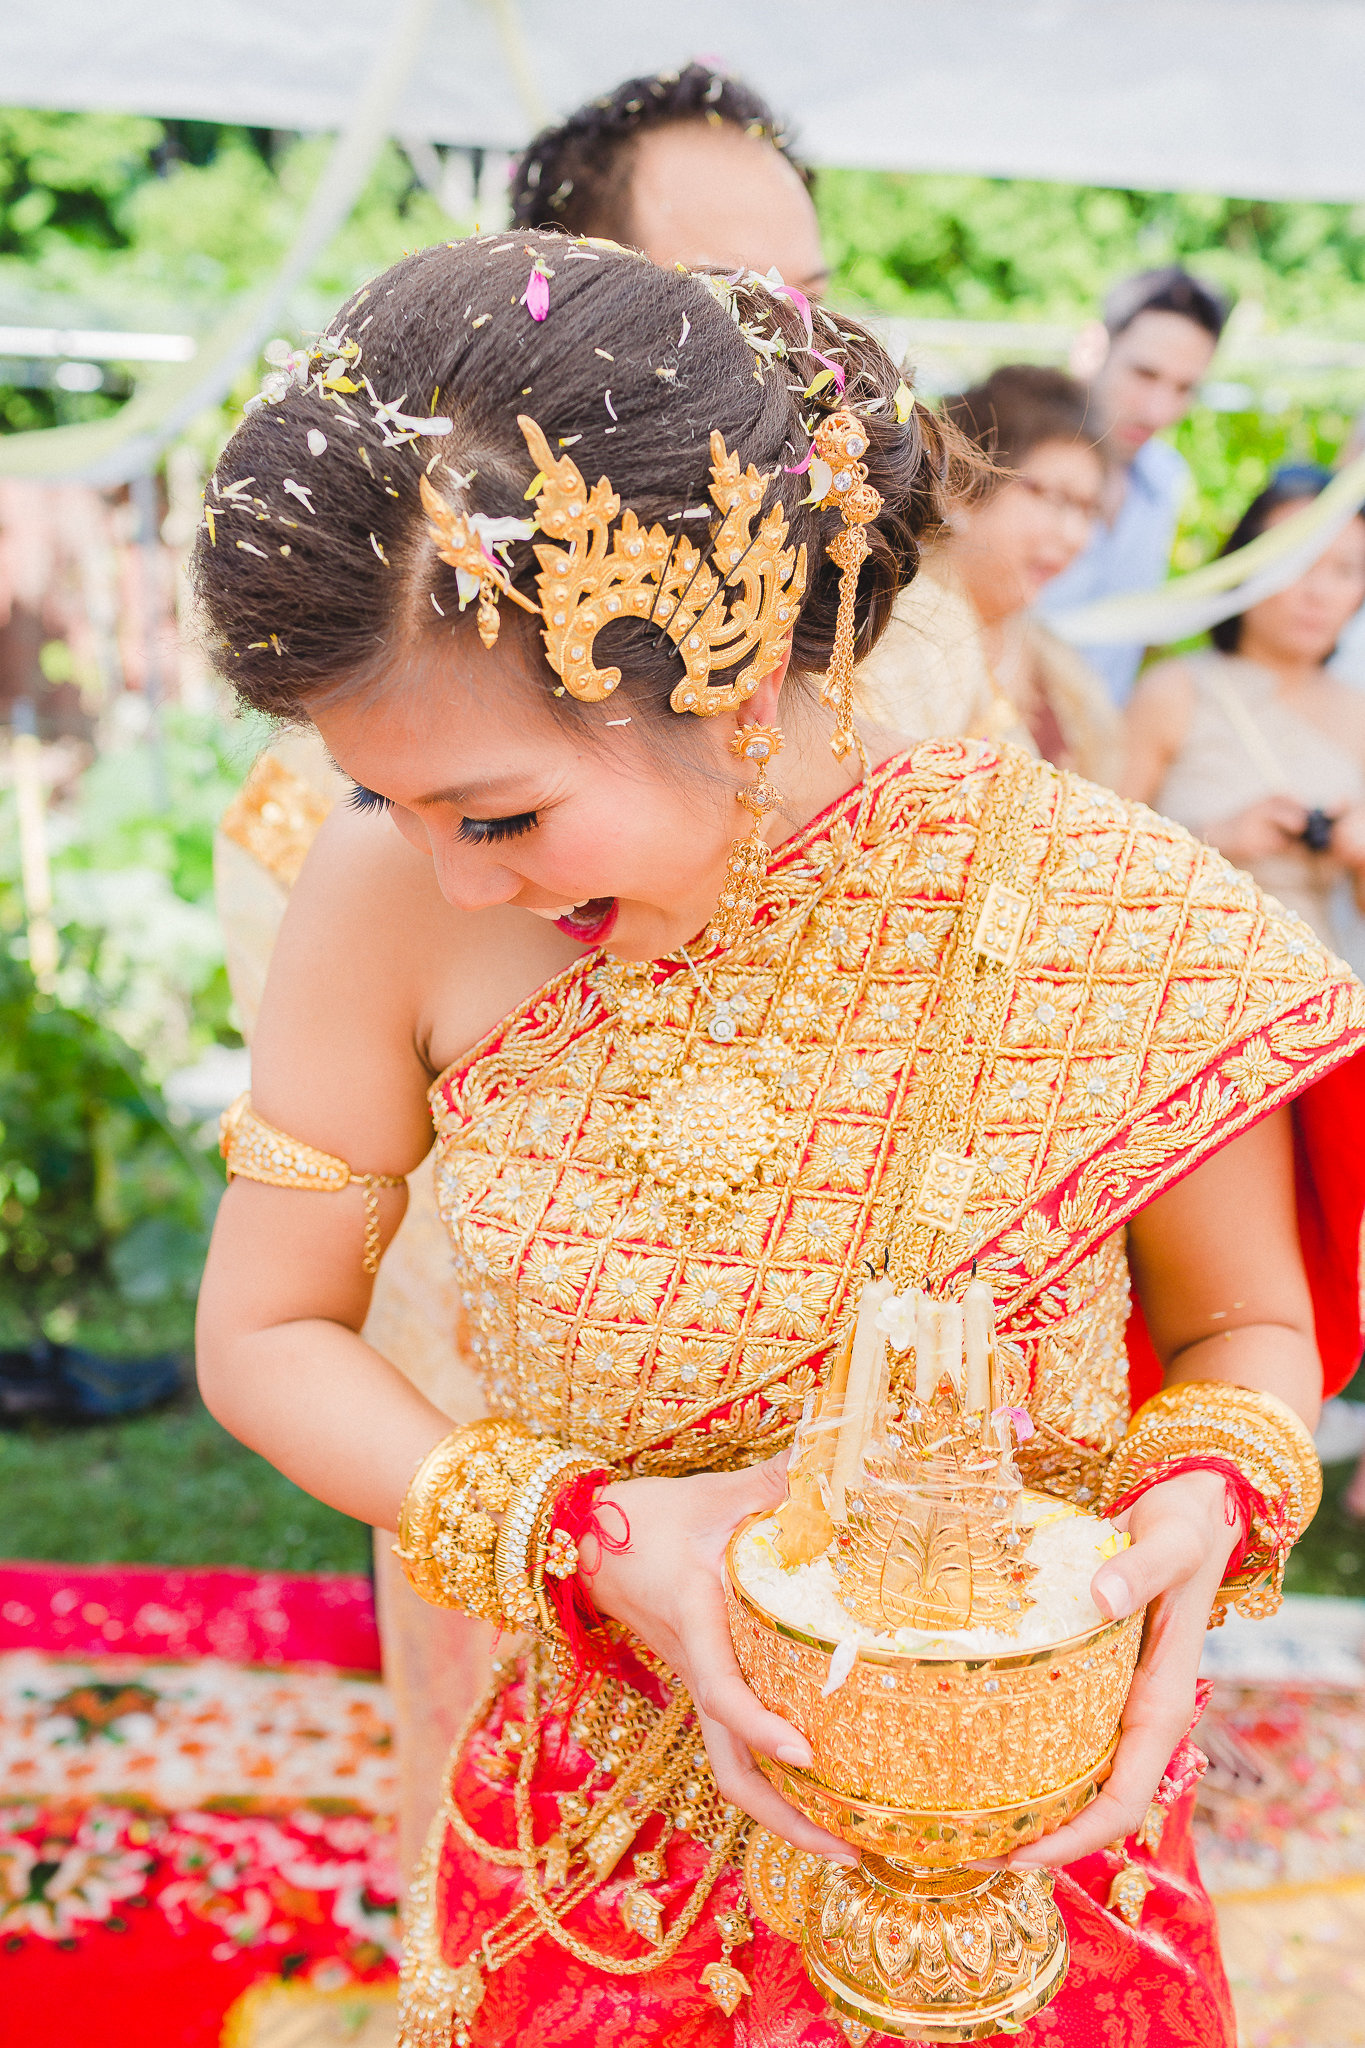 photographe-montreal-mariage-culturel-traditionnel-cambodgien-lisa-renault-photographie-traditional-cultural-cambodian-wedding-75